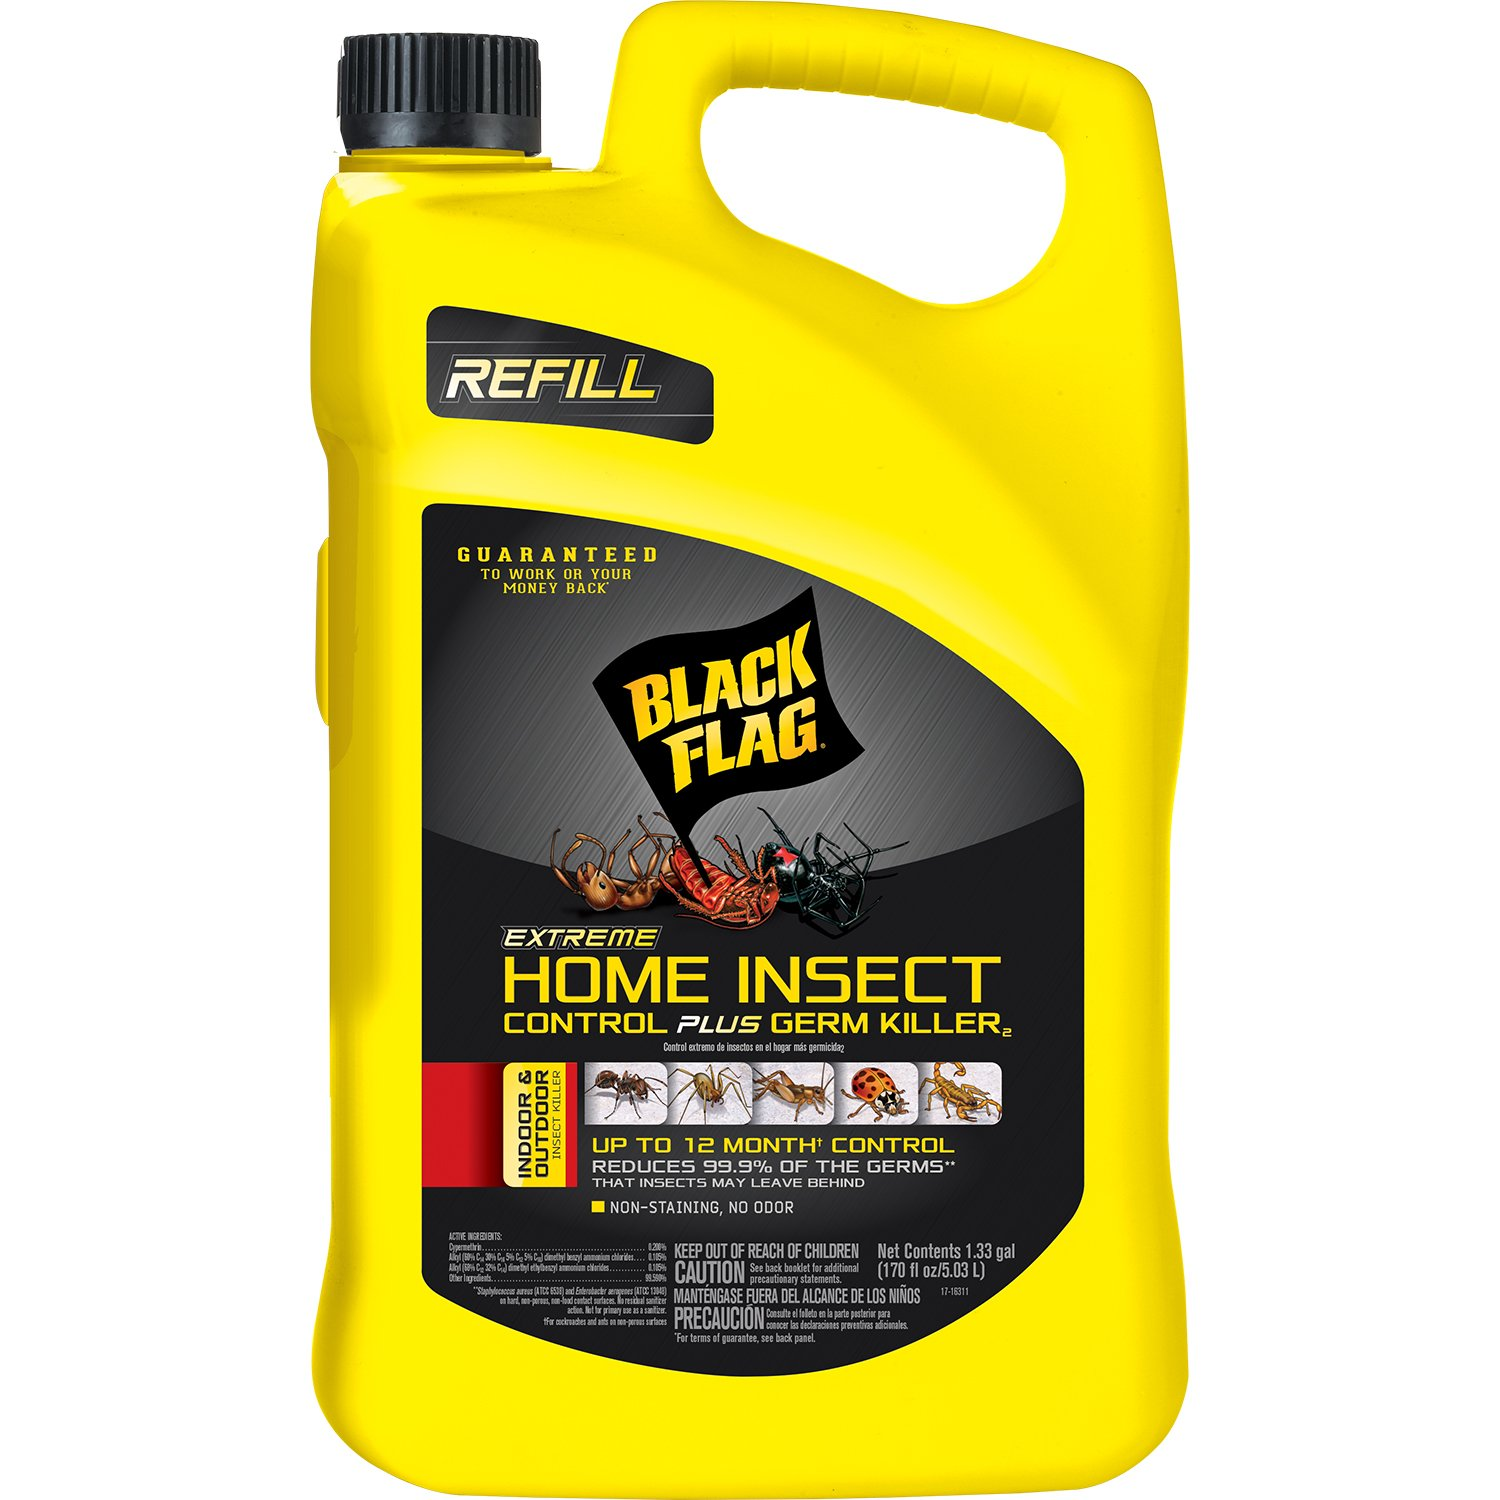 Black Flag Extreme Home Insect Control + Germ Killer2 (AccuShot Refill), 1.33-gal 11103